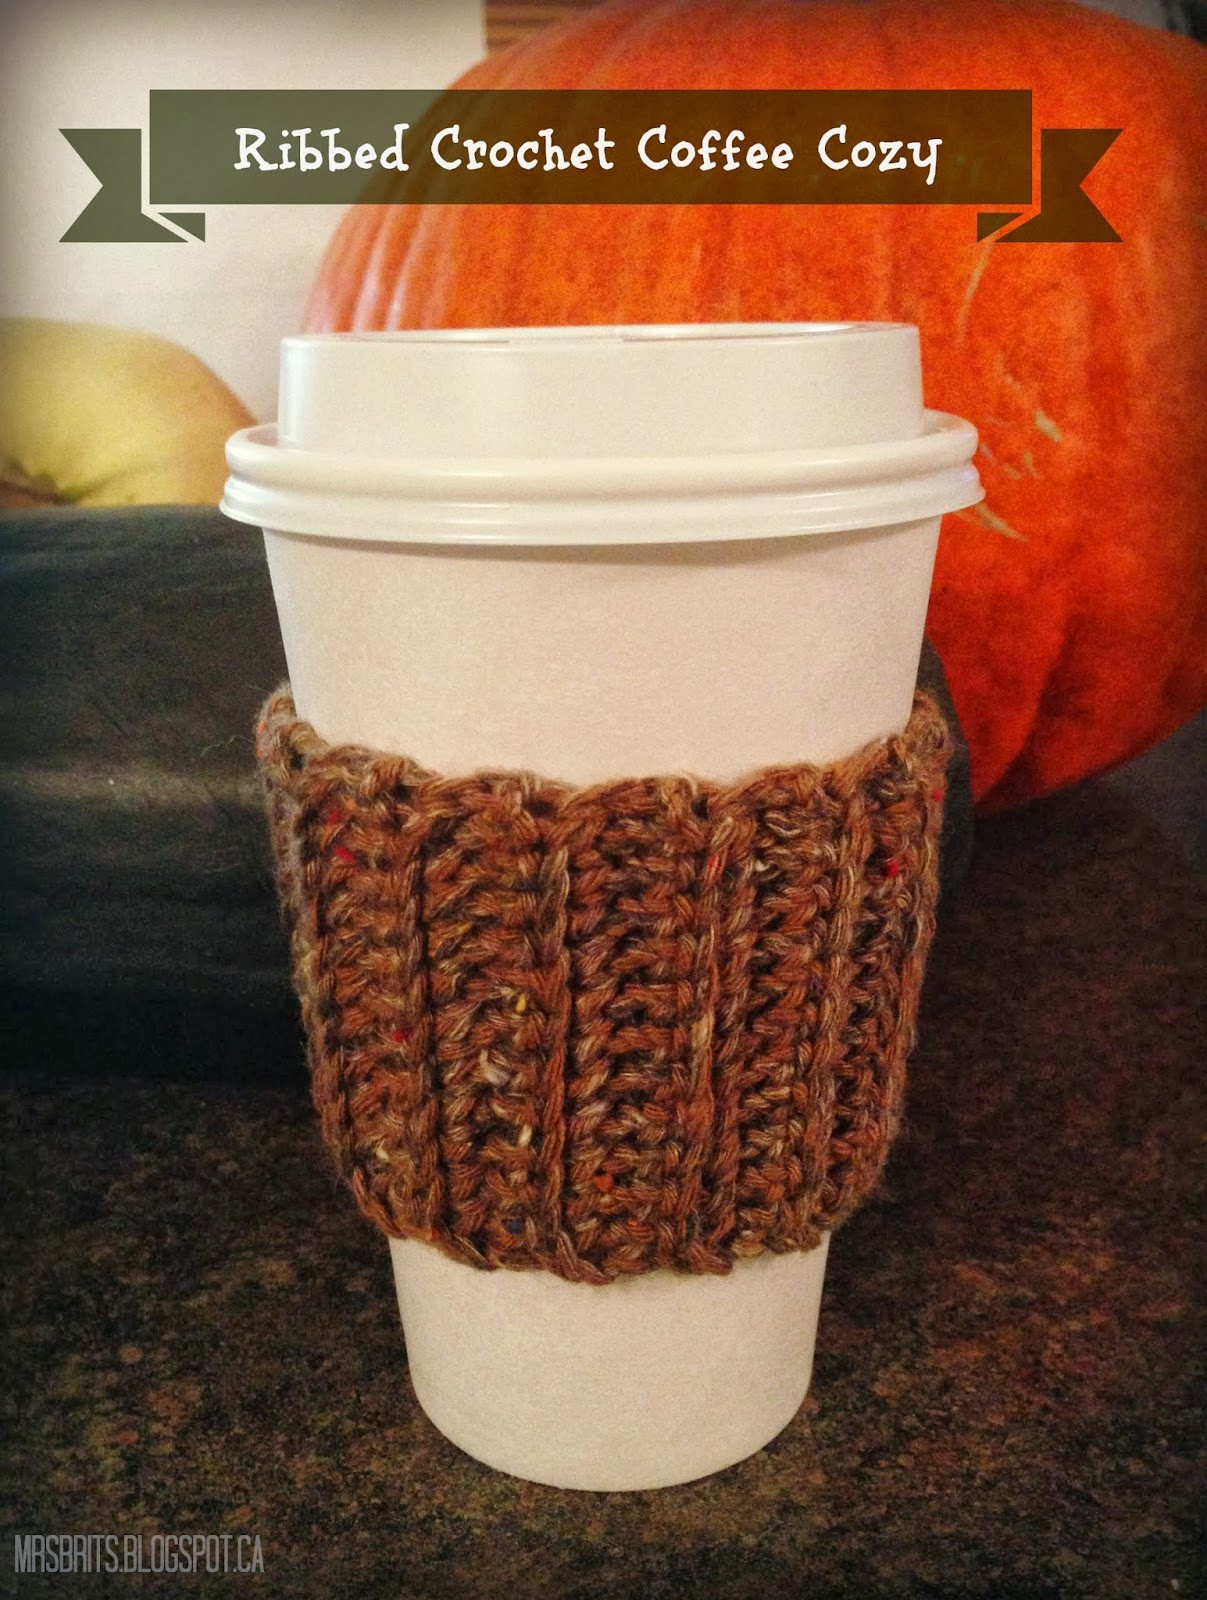 Crochet Coffee Cup Cozy Unique Mrsbrits Ribbed Coffee Cozy Crochet Pattern Of Crochet Coffee Cup Cozy Best Of Craftdrawer Crafts Free Easy to Crochet Mug Cozy Patterns